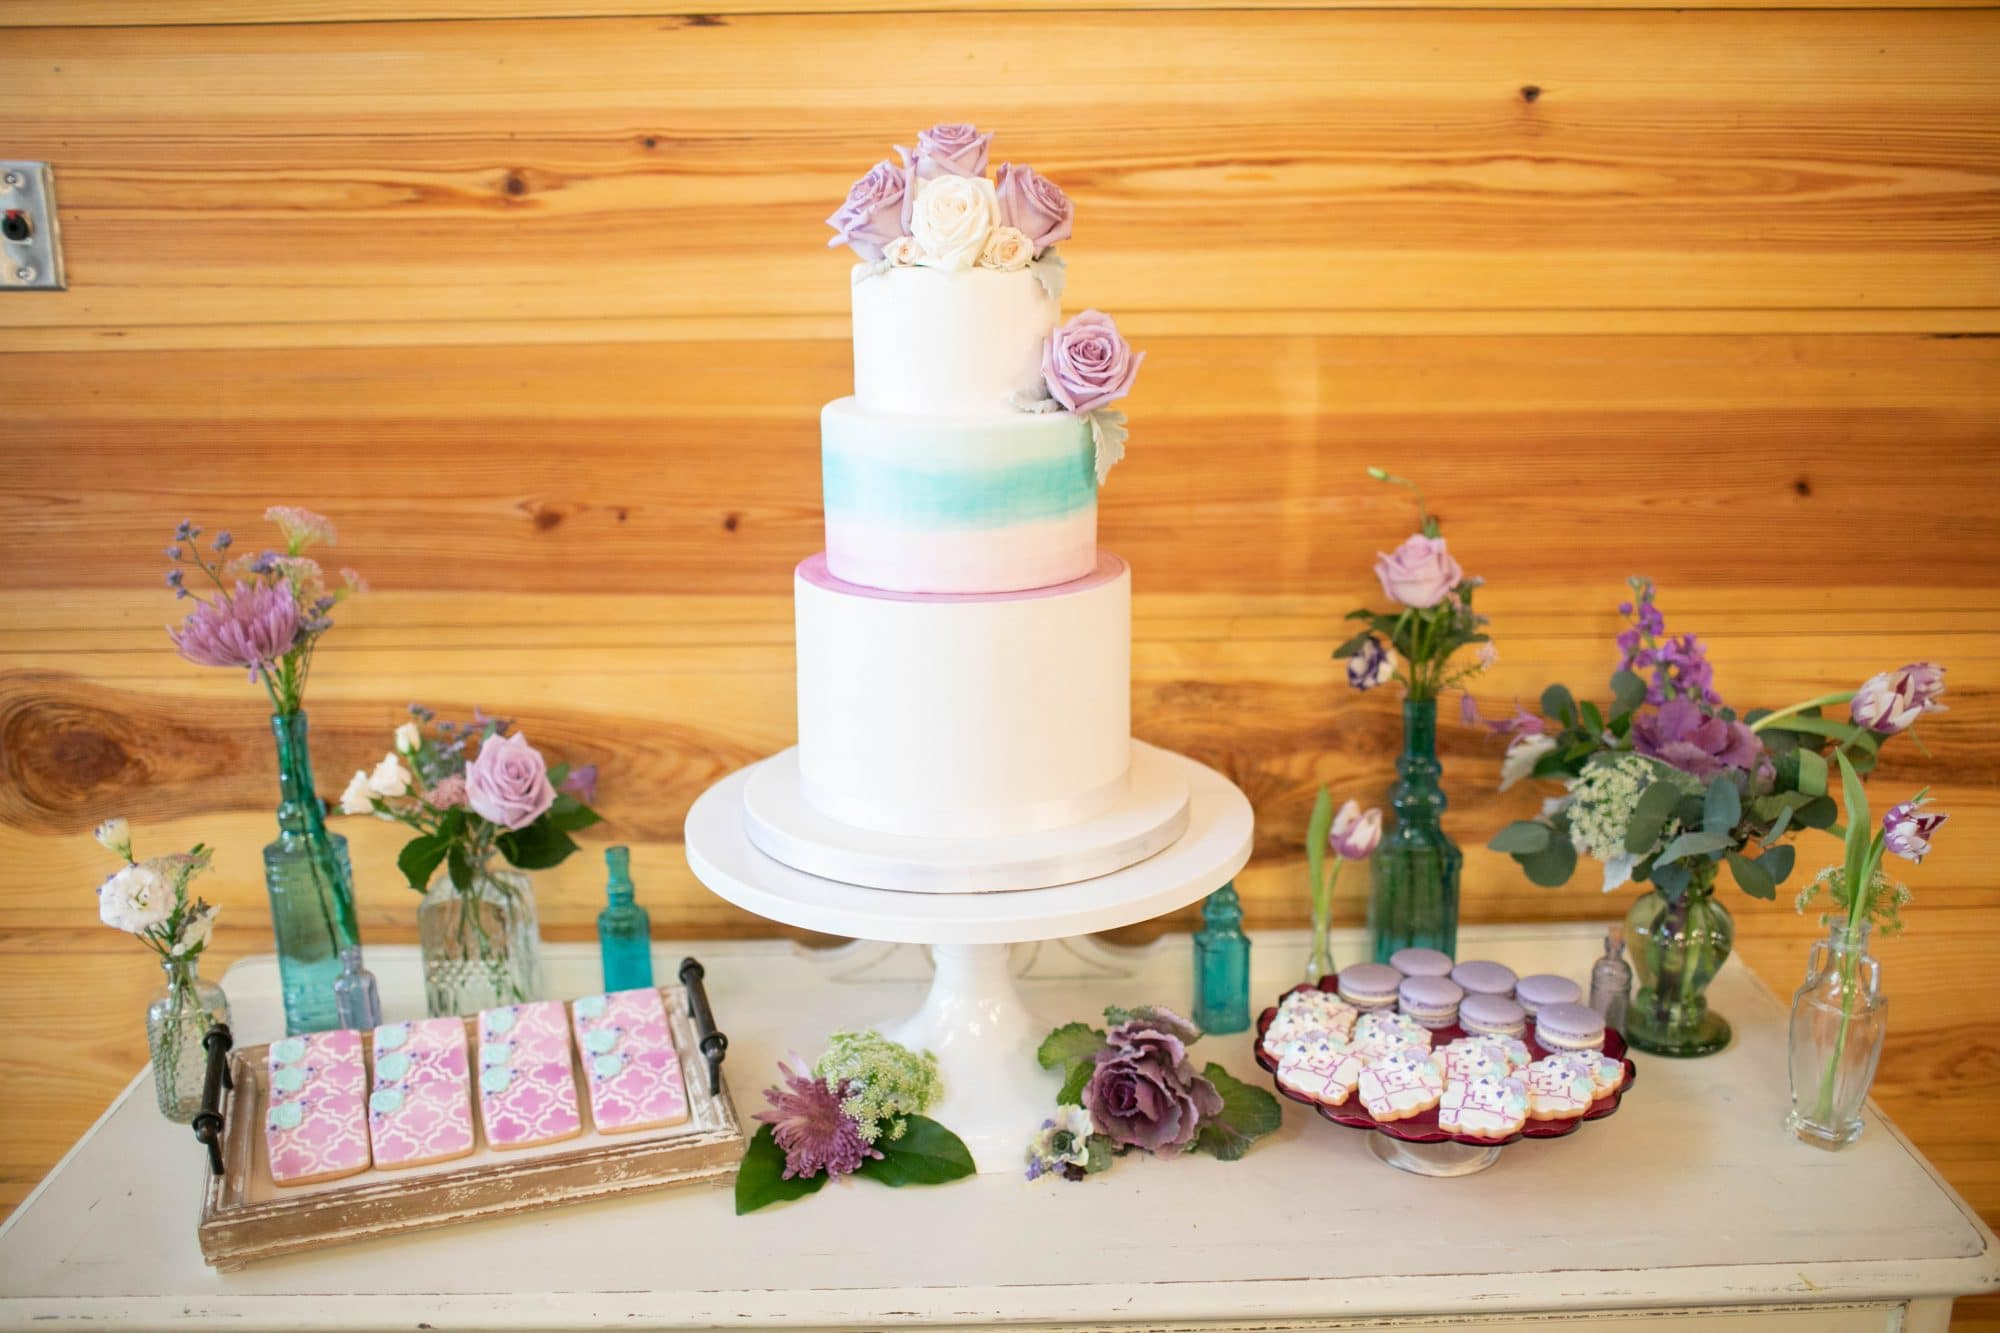 Everything Cake - wedding cake next to cookies and macarons on dessert table.